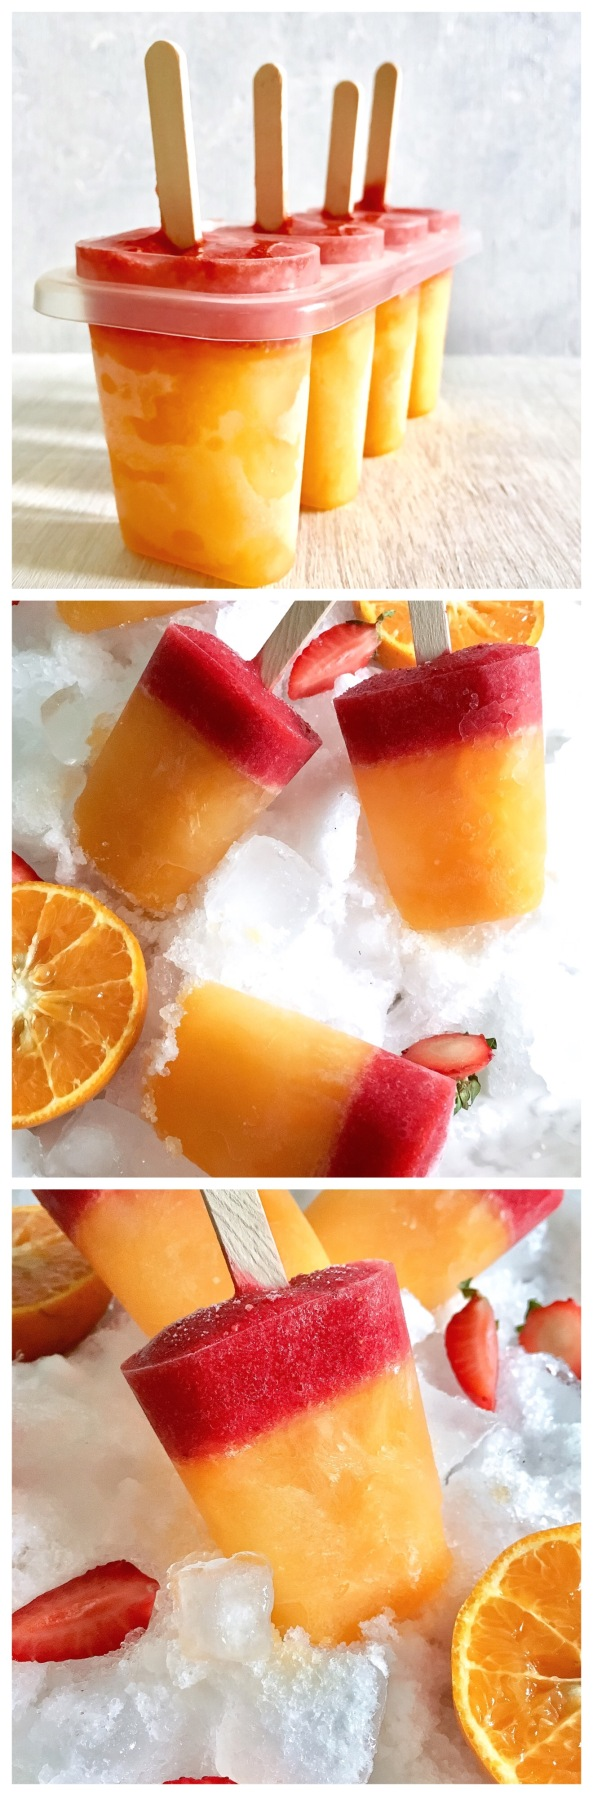 Volcano Popsicles Vegan & Glutenfree | Strawberry & Orange Popsicles